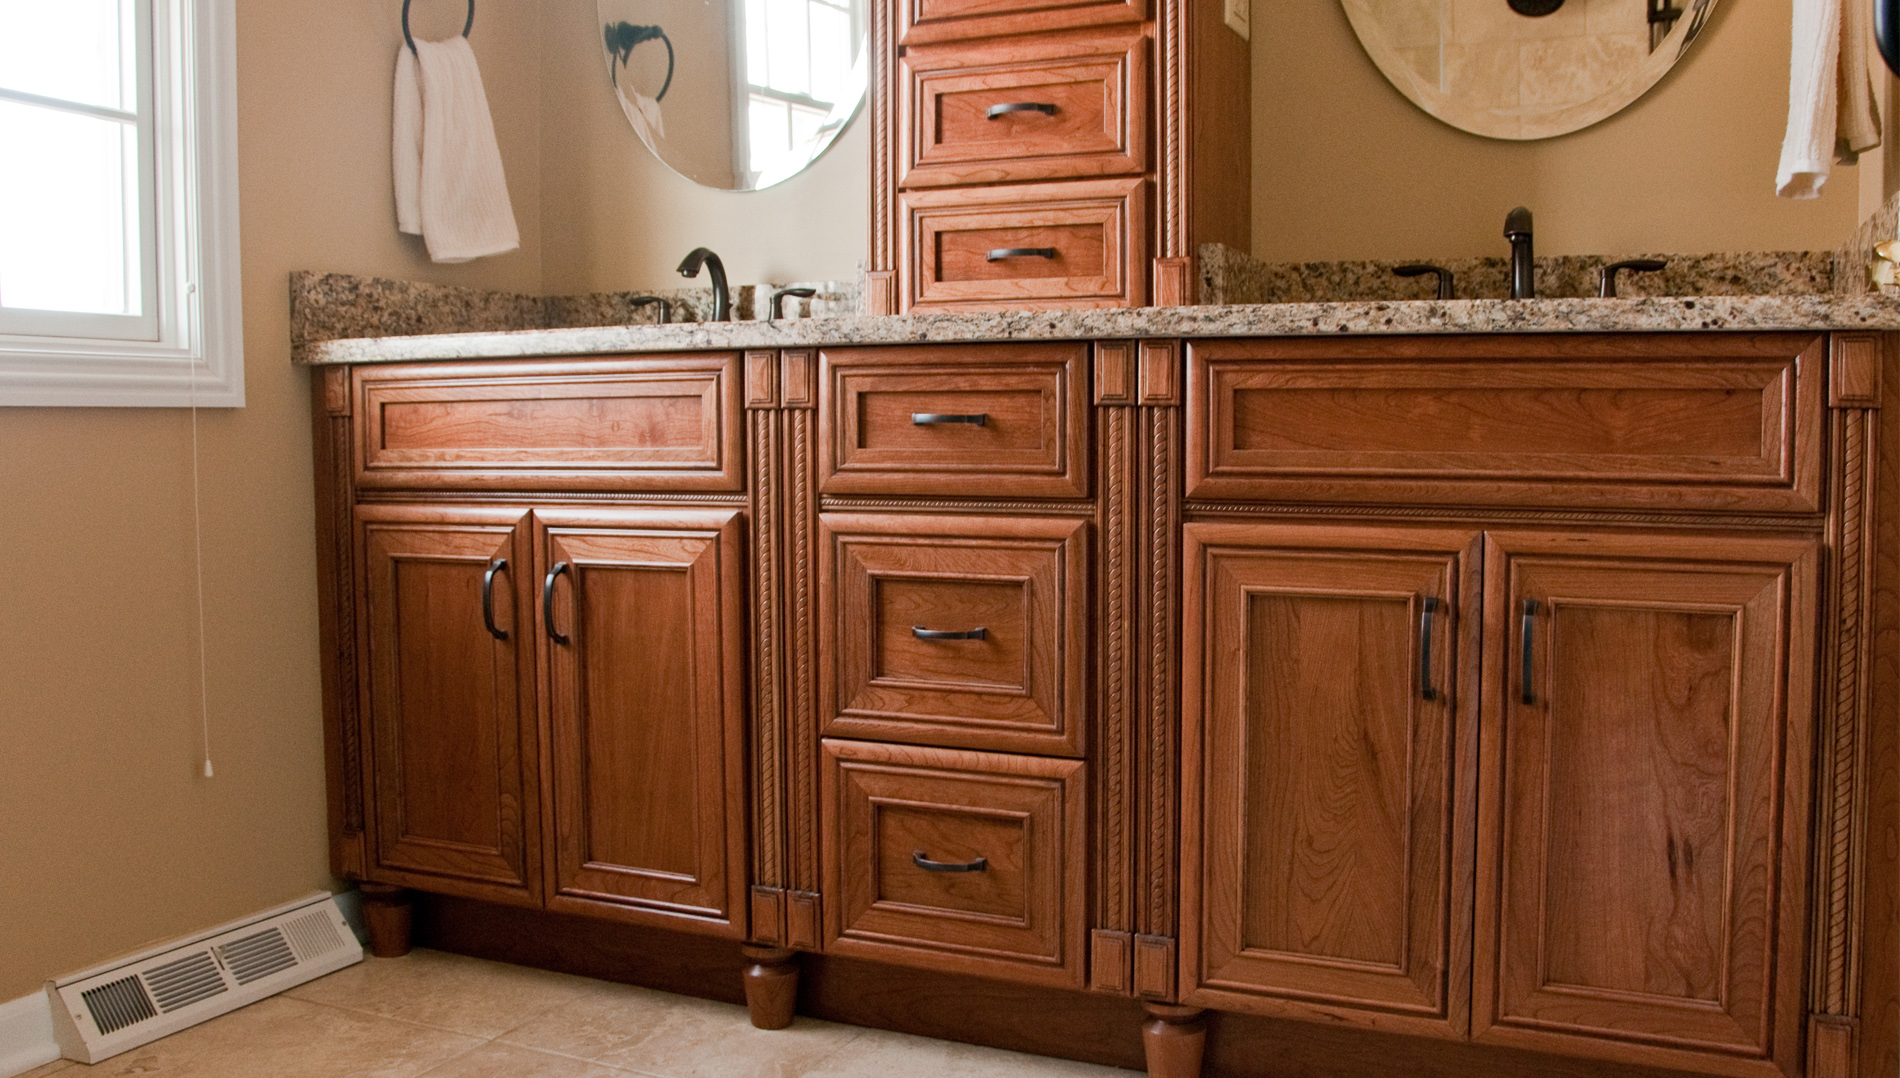 Custom Bathroom Vanities Naperville custom cabinetry in the bathroom